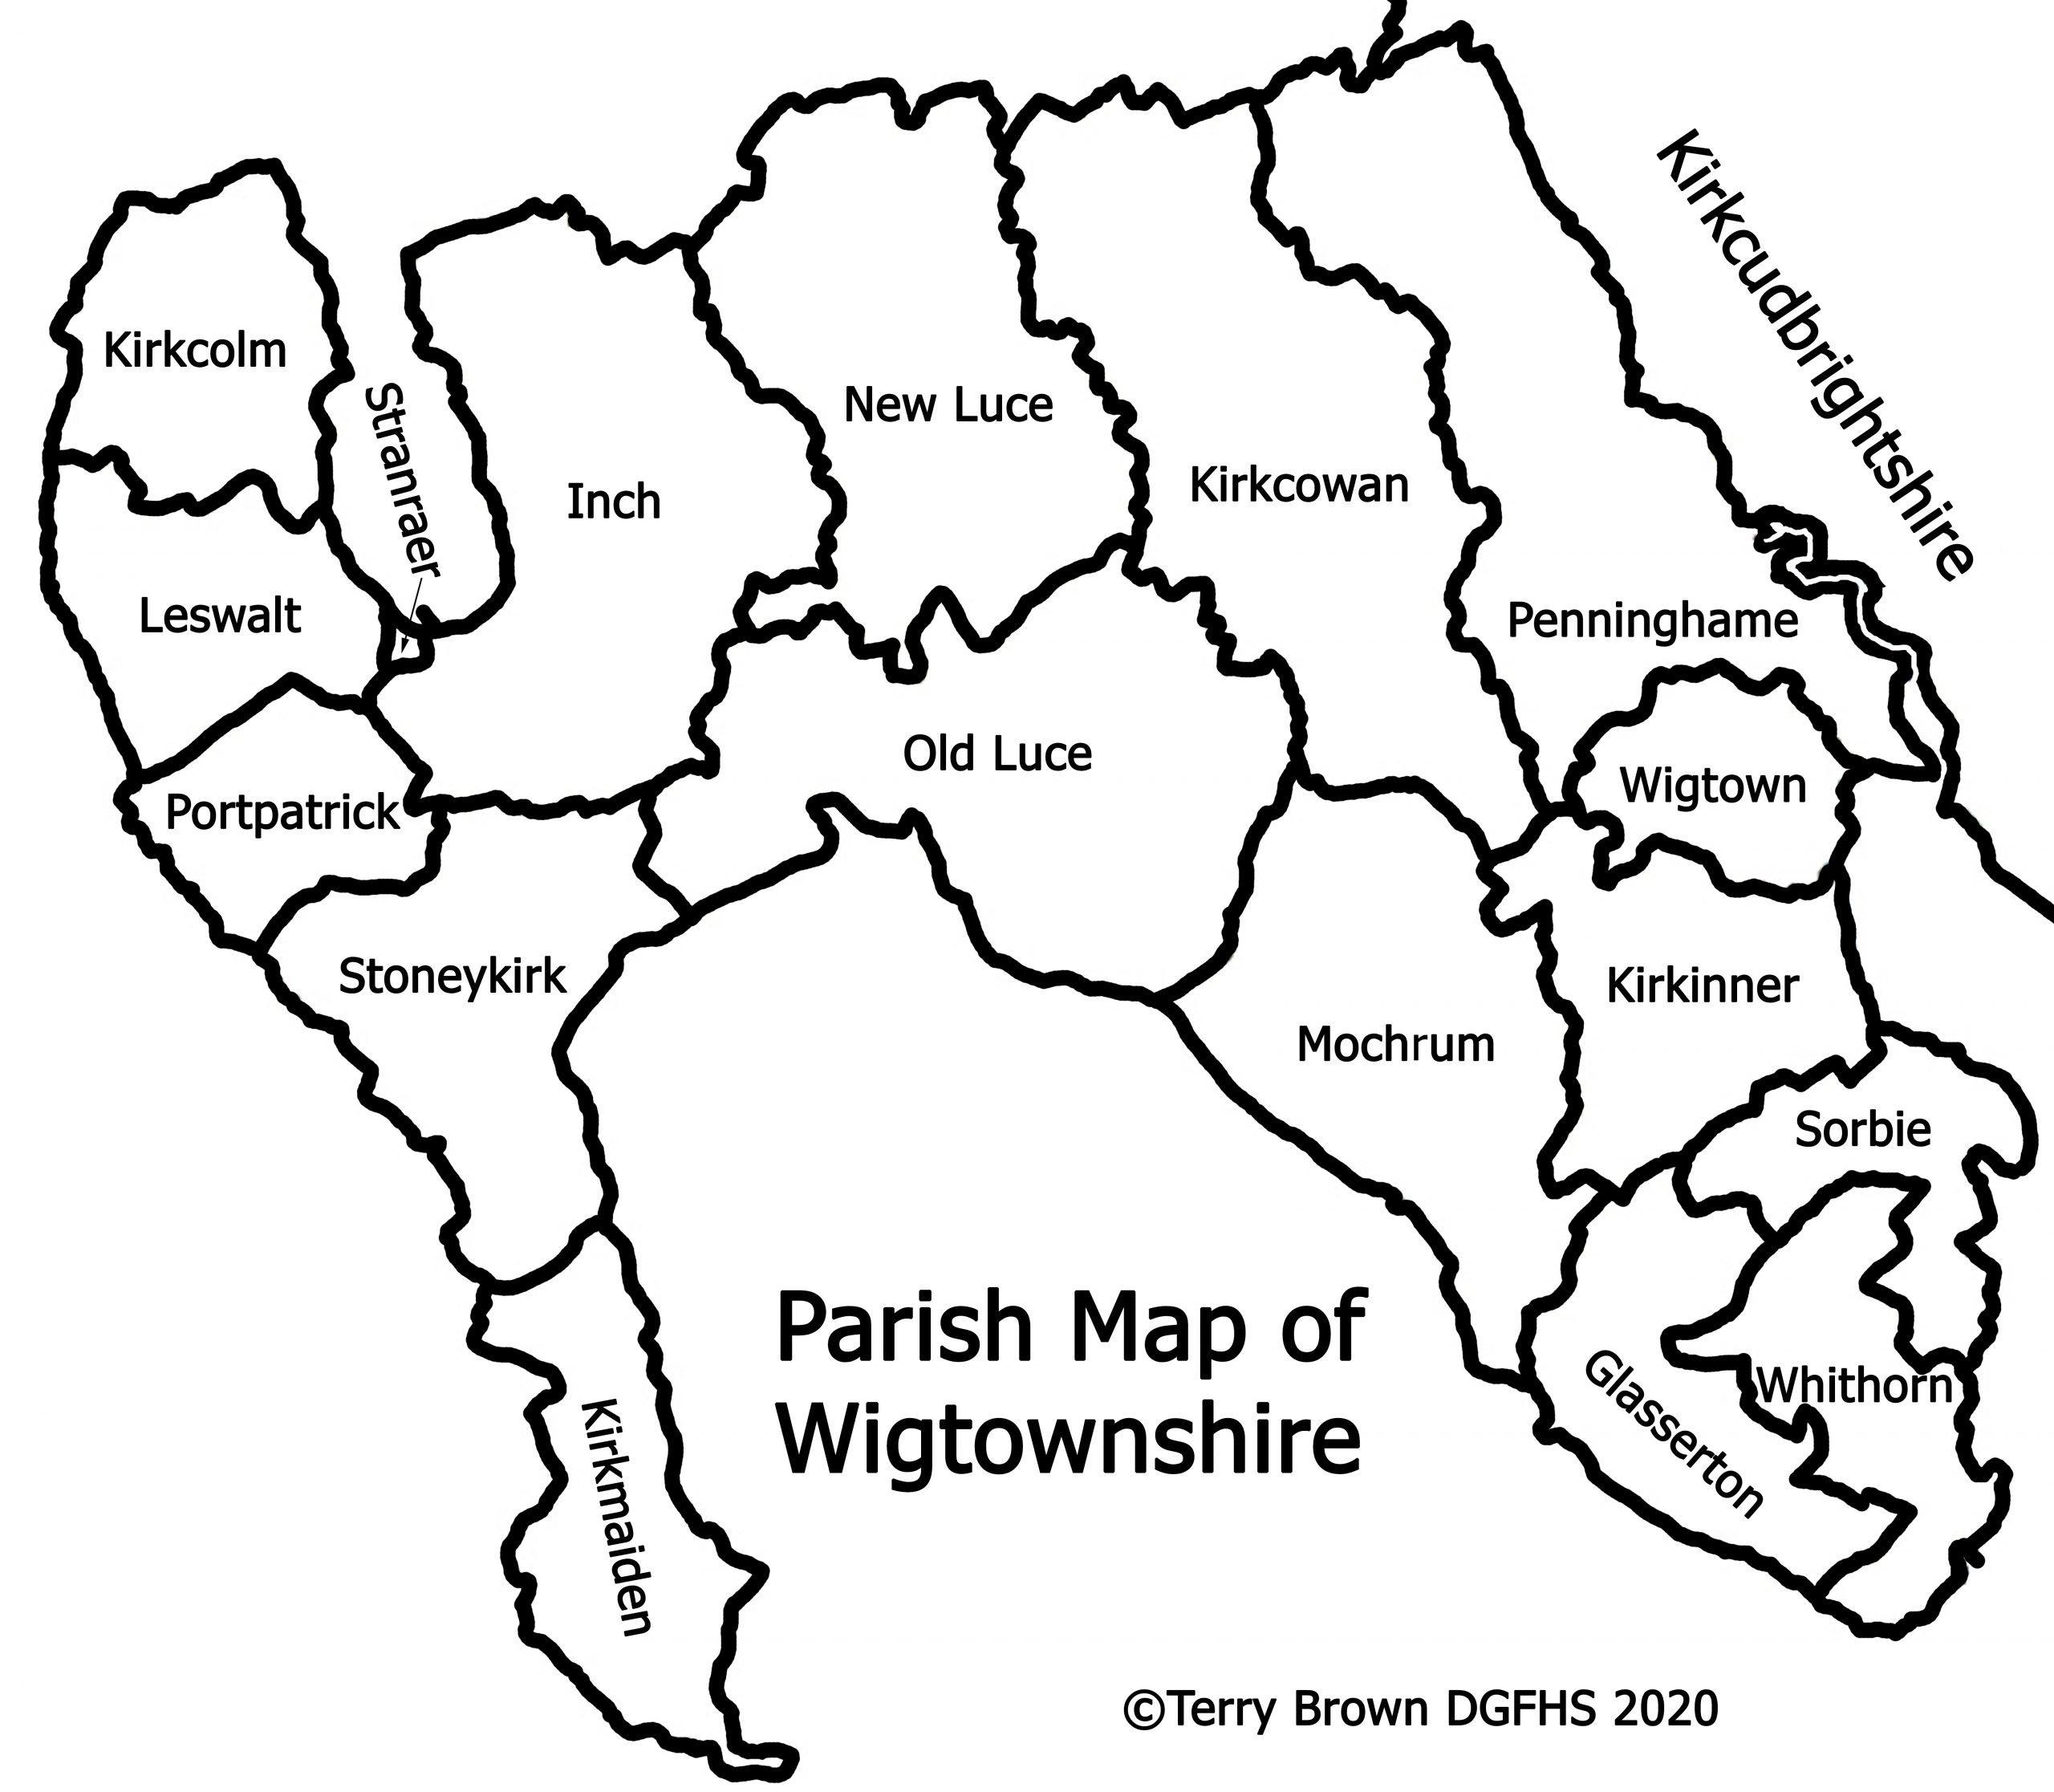 Parish Map of Wigtownshire